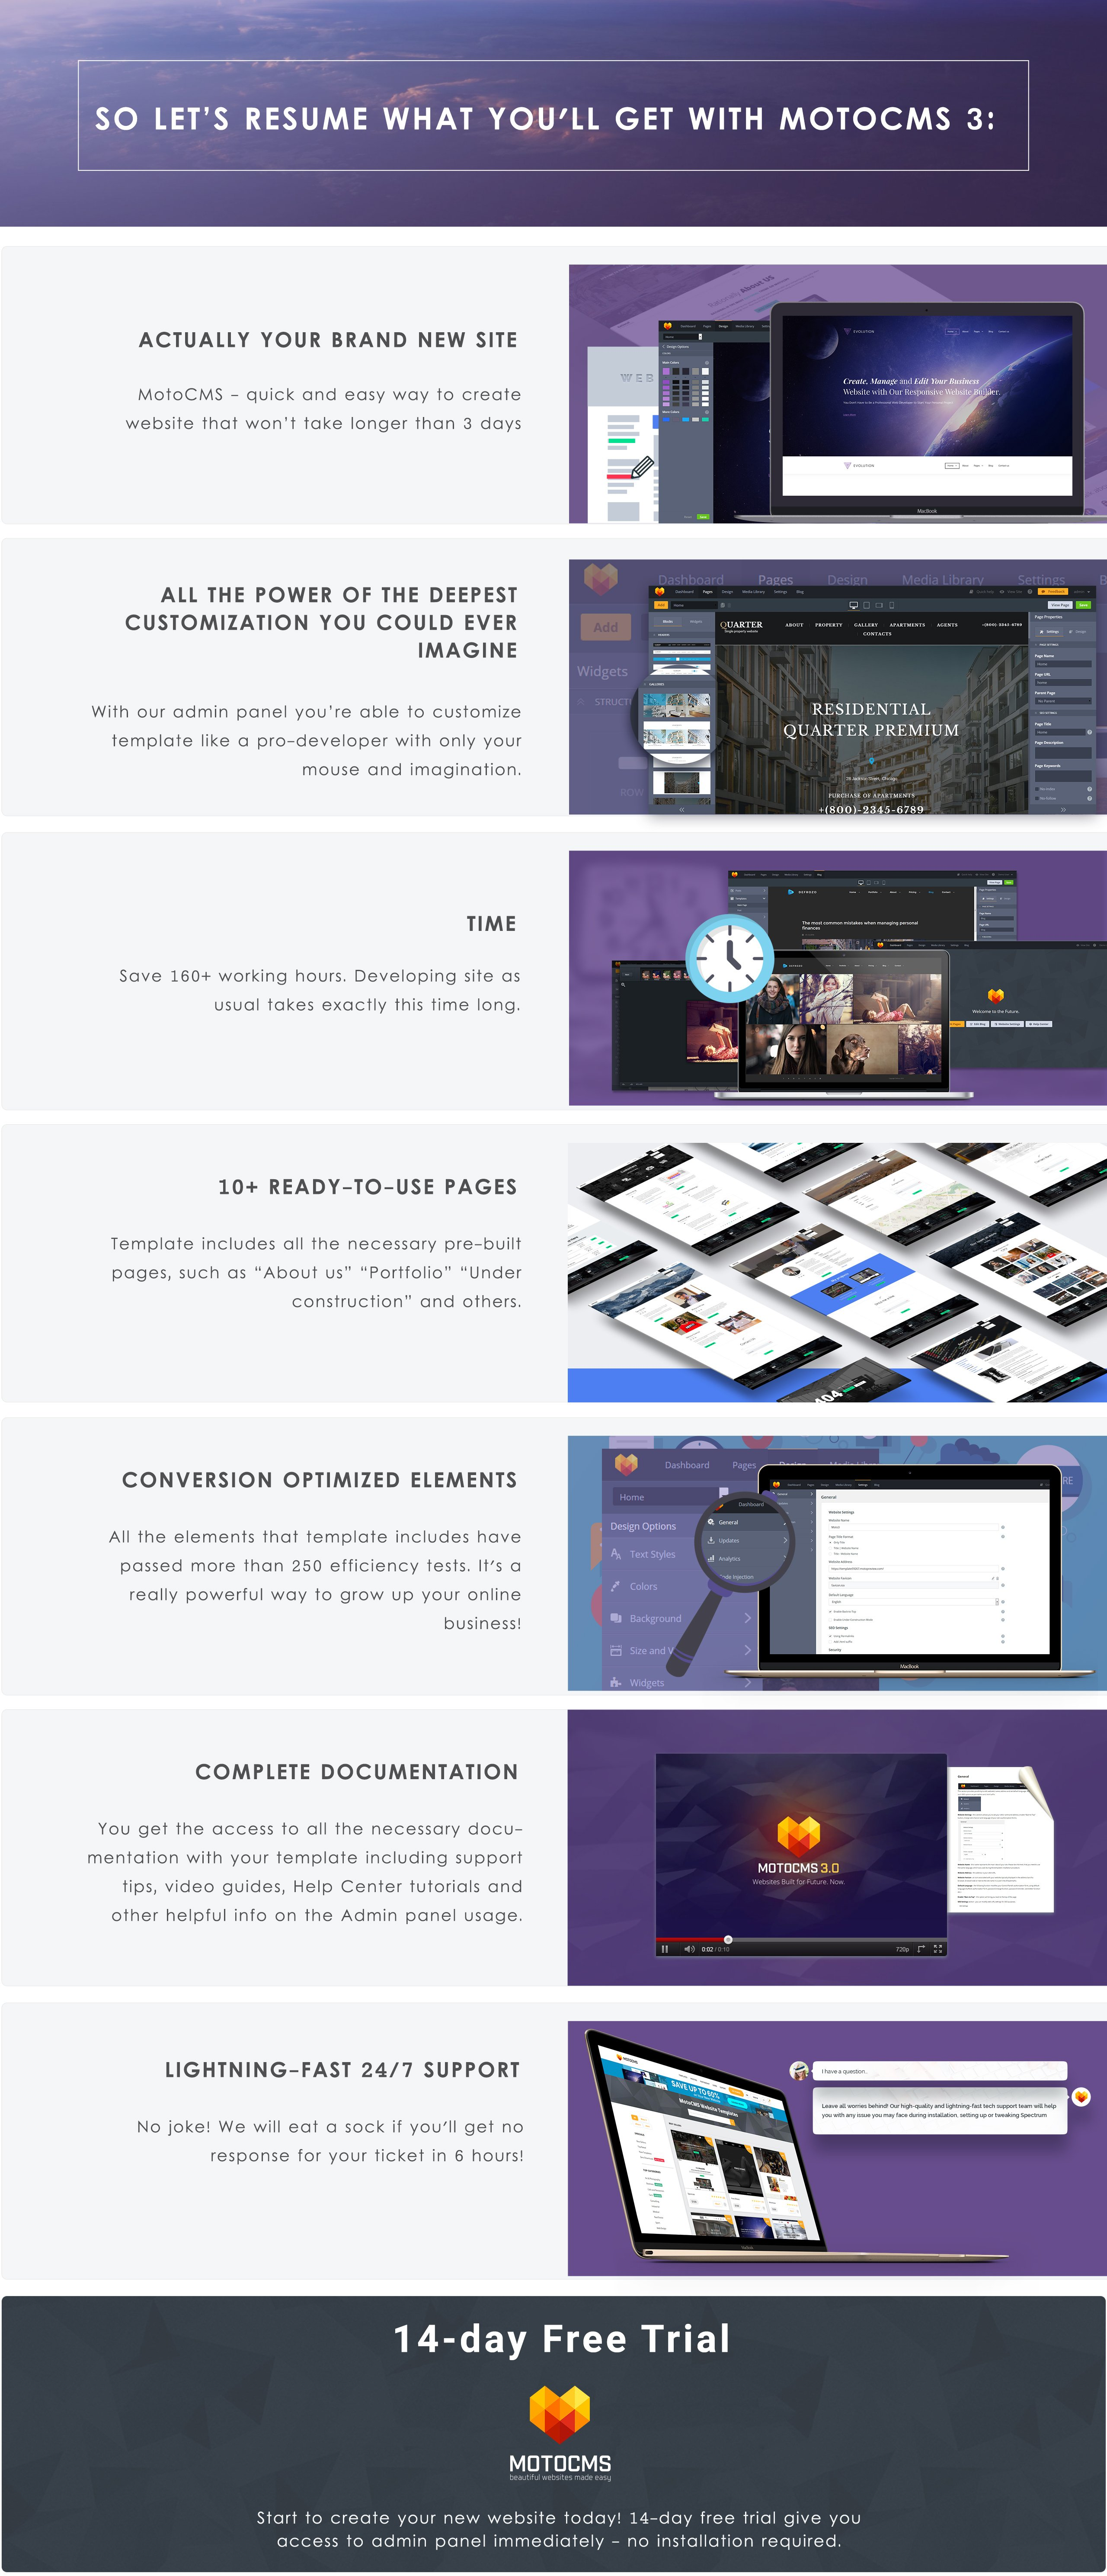 Hair Stylist Moto CMS 3 Template